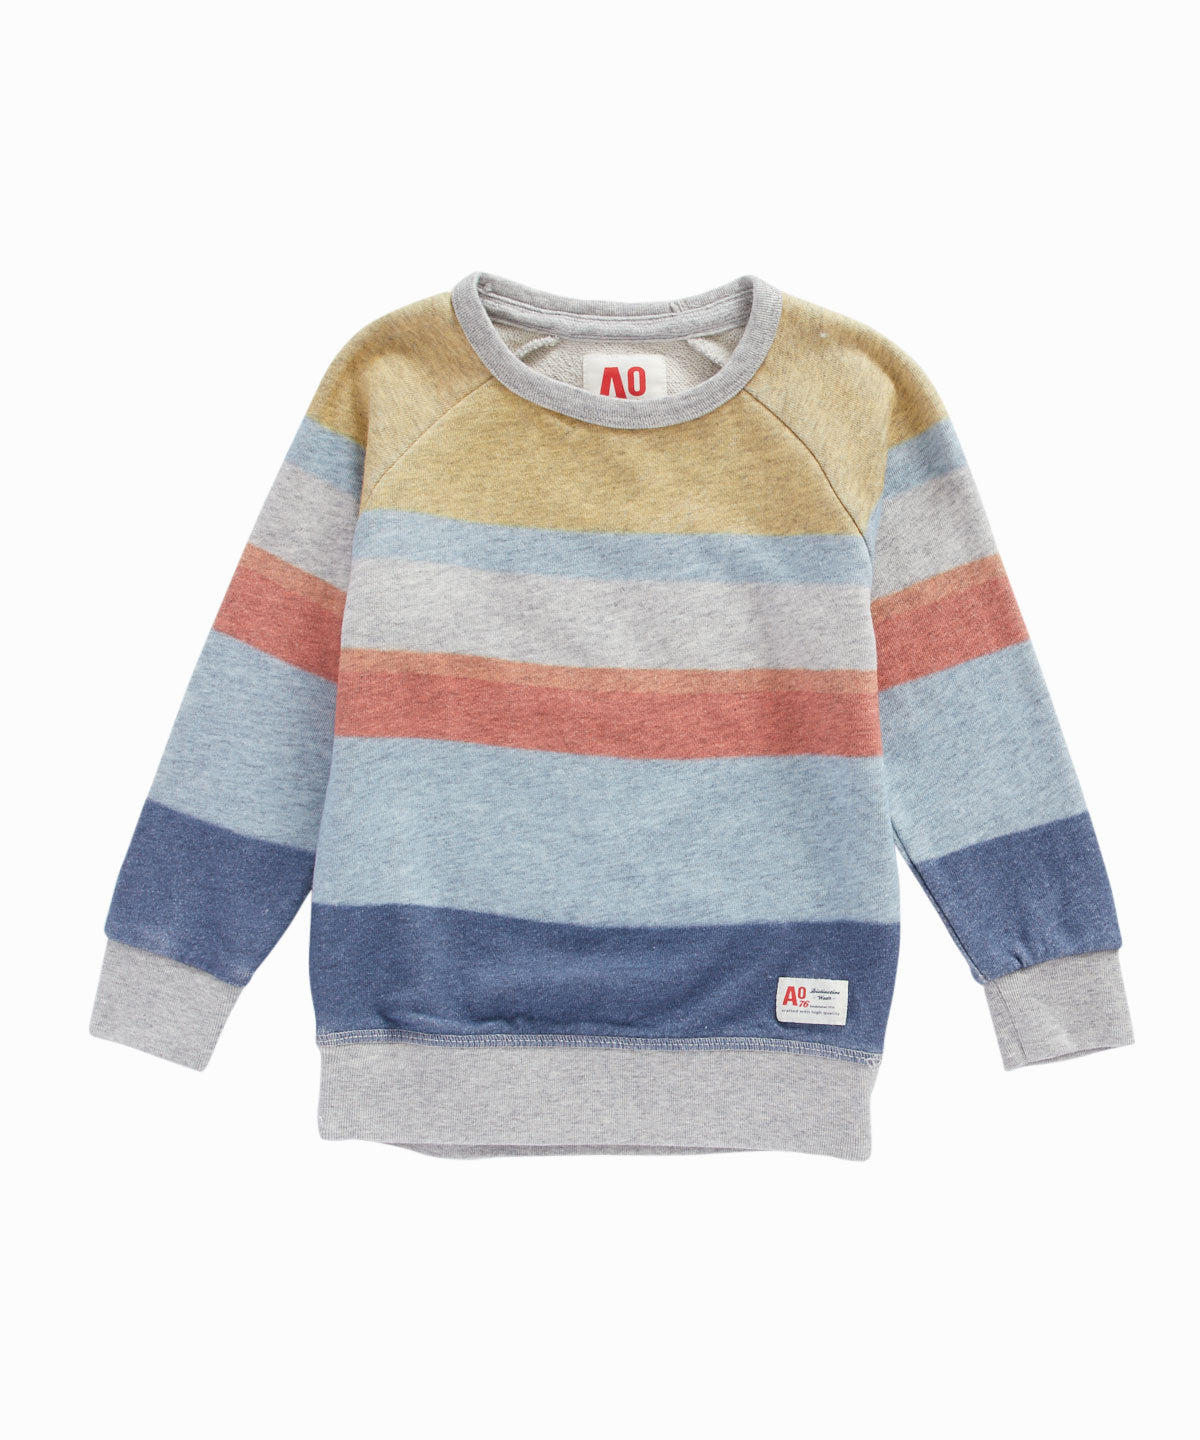 Wide Striped Pullover Sweatshirt